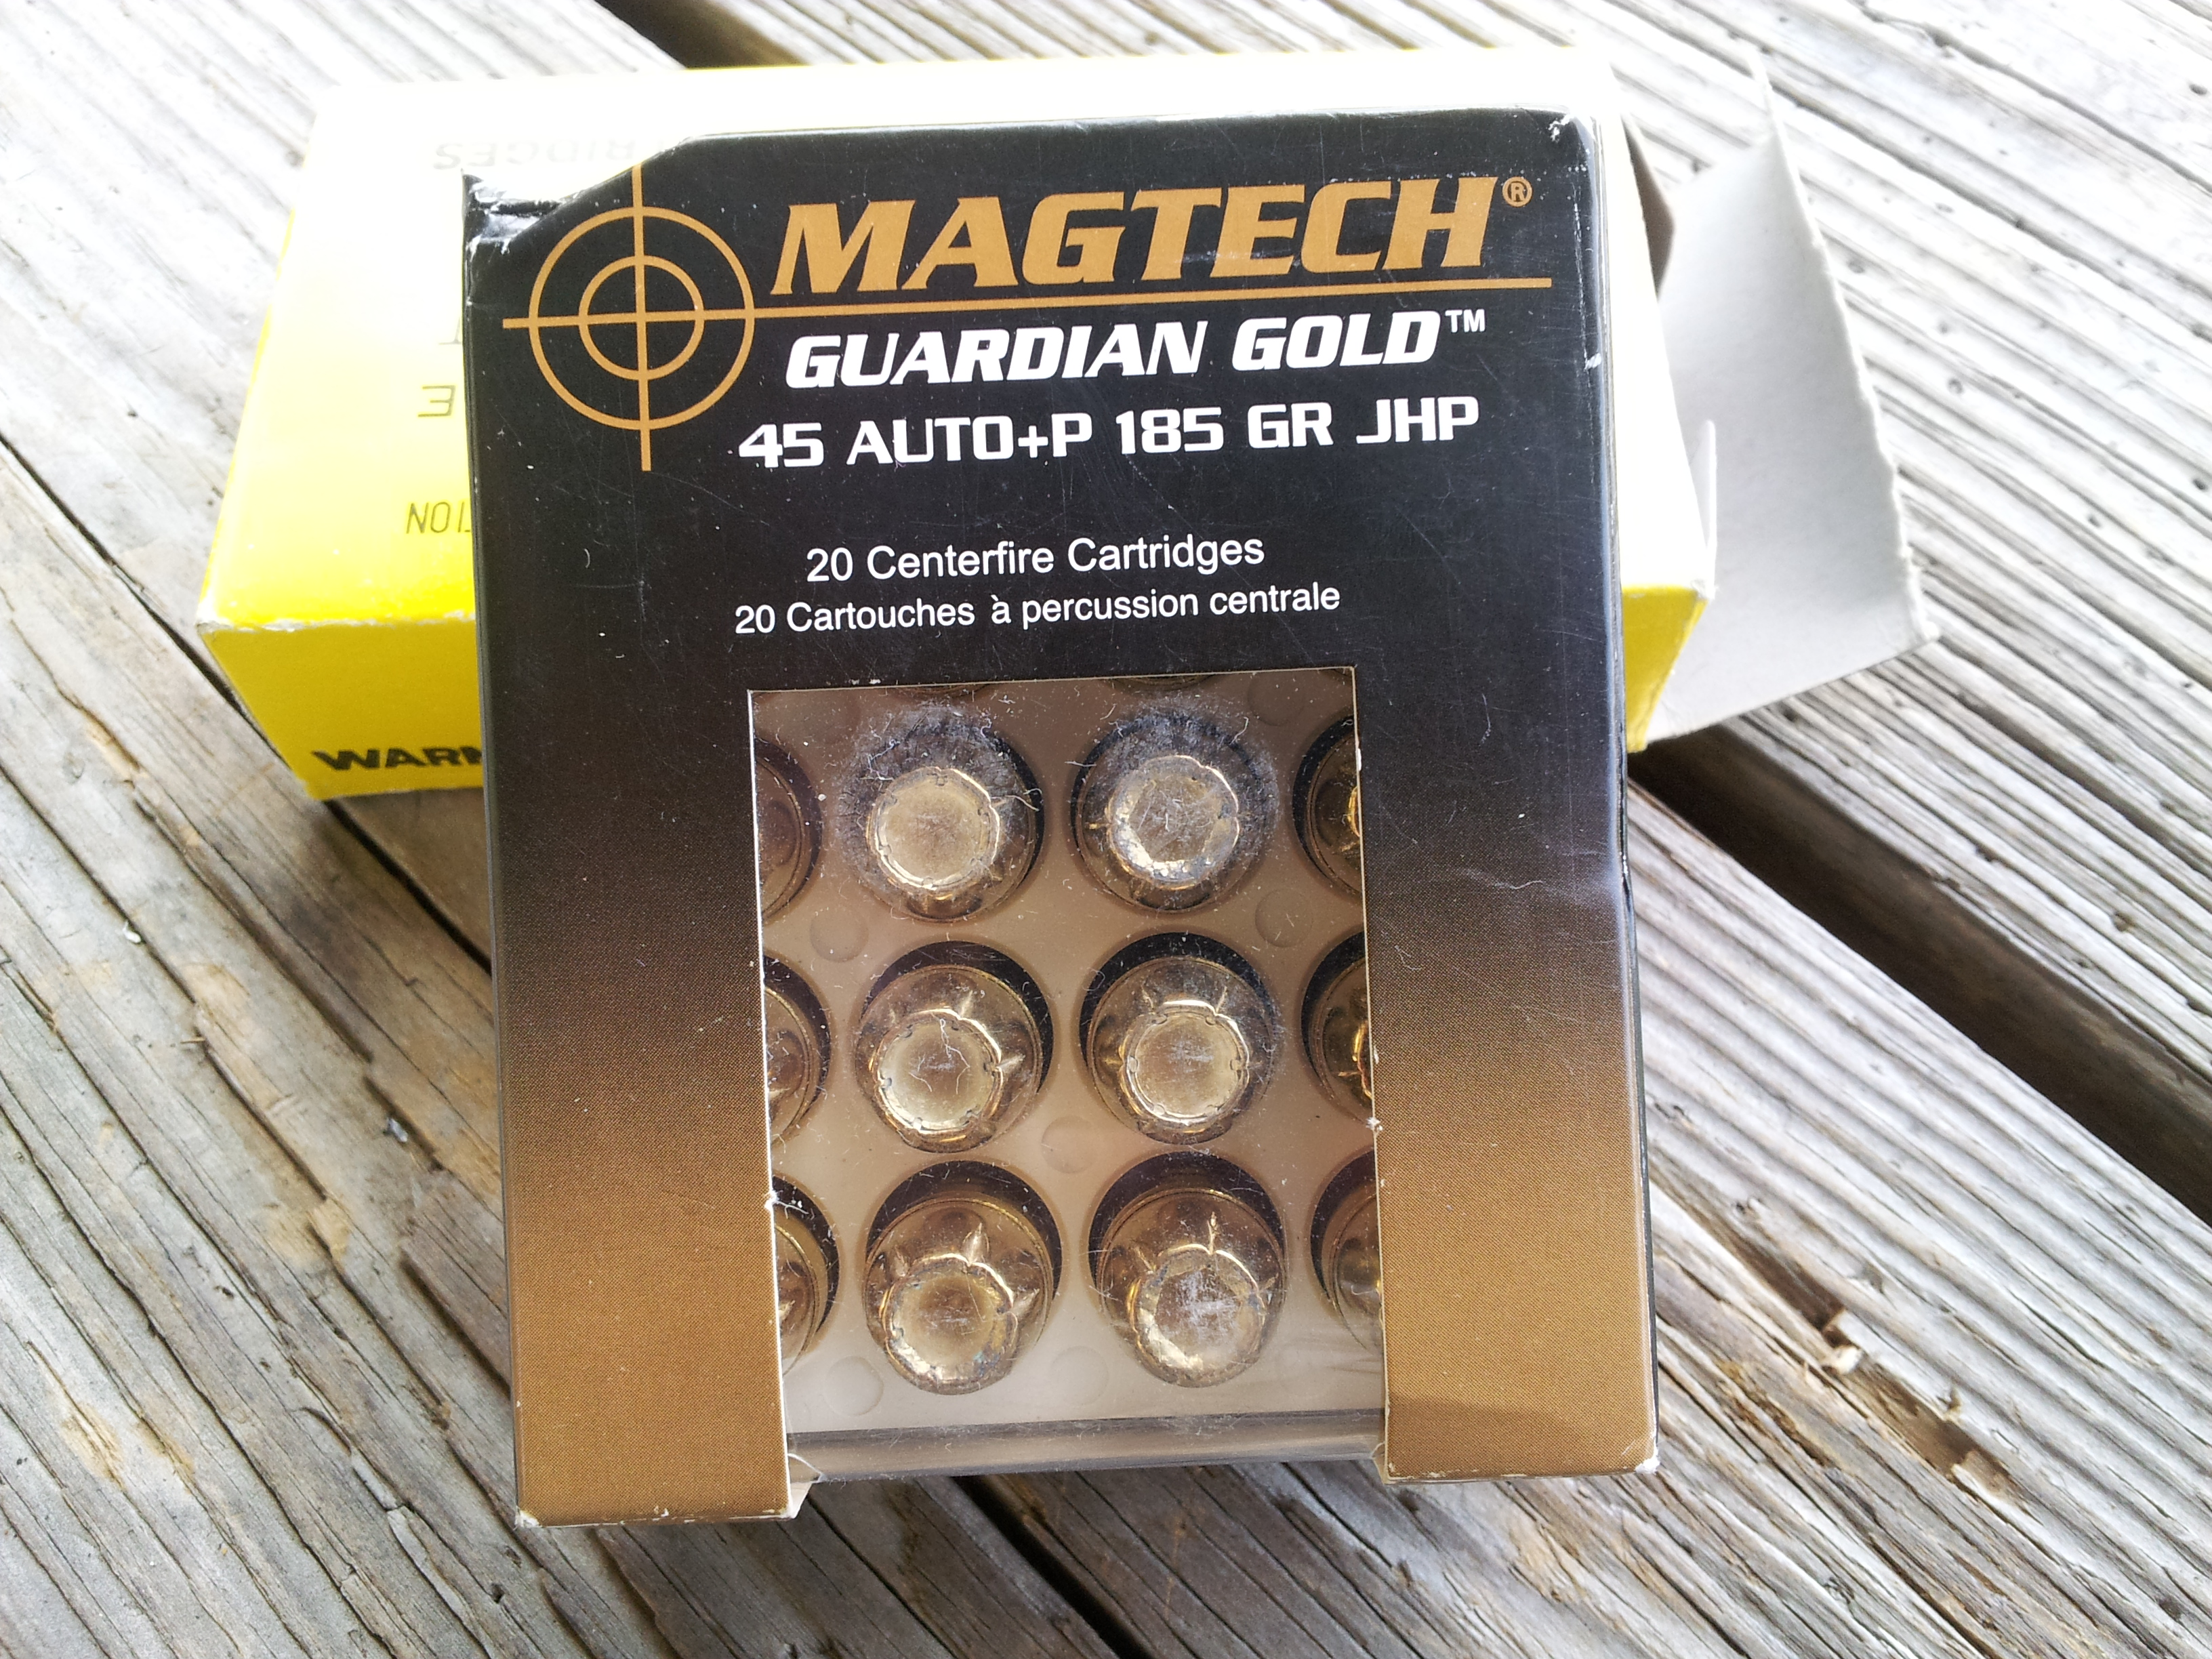 �magtech� articles at the typical shooter